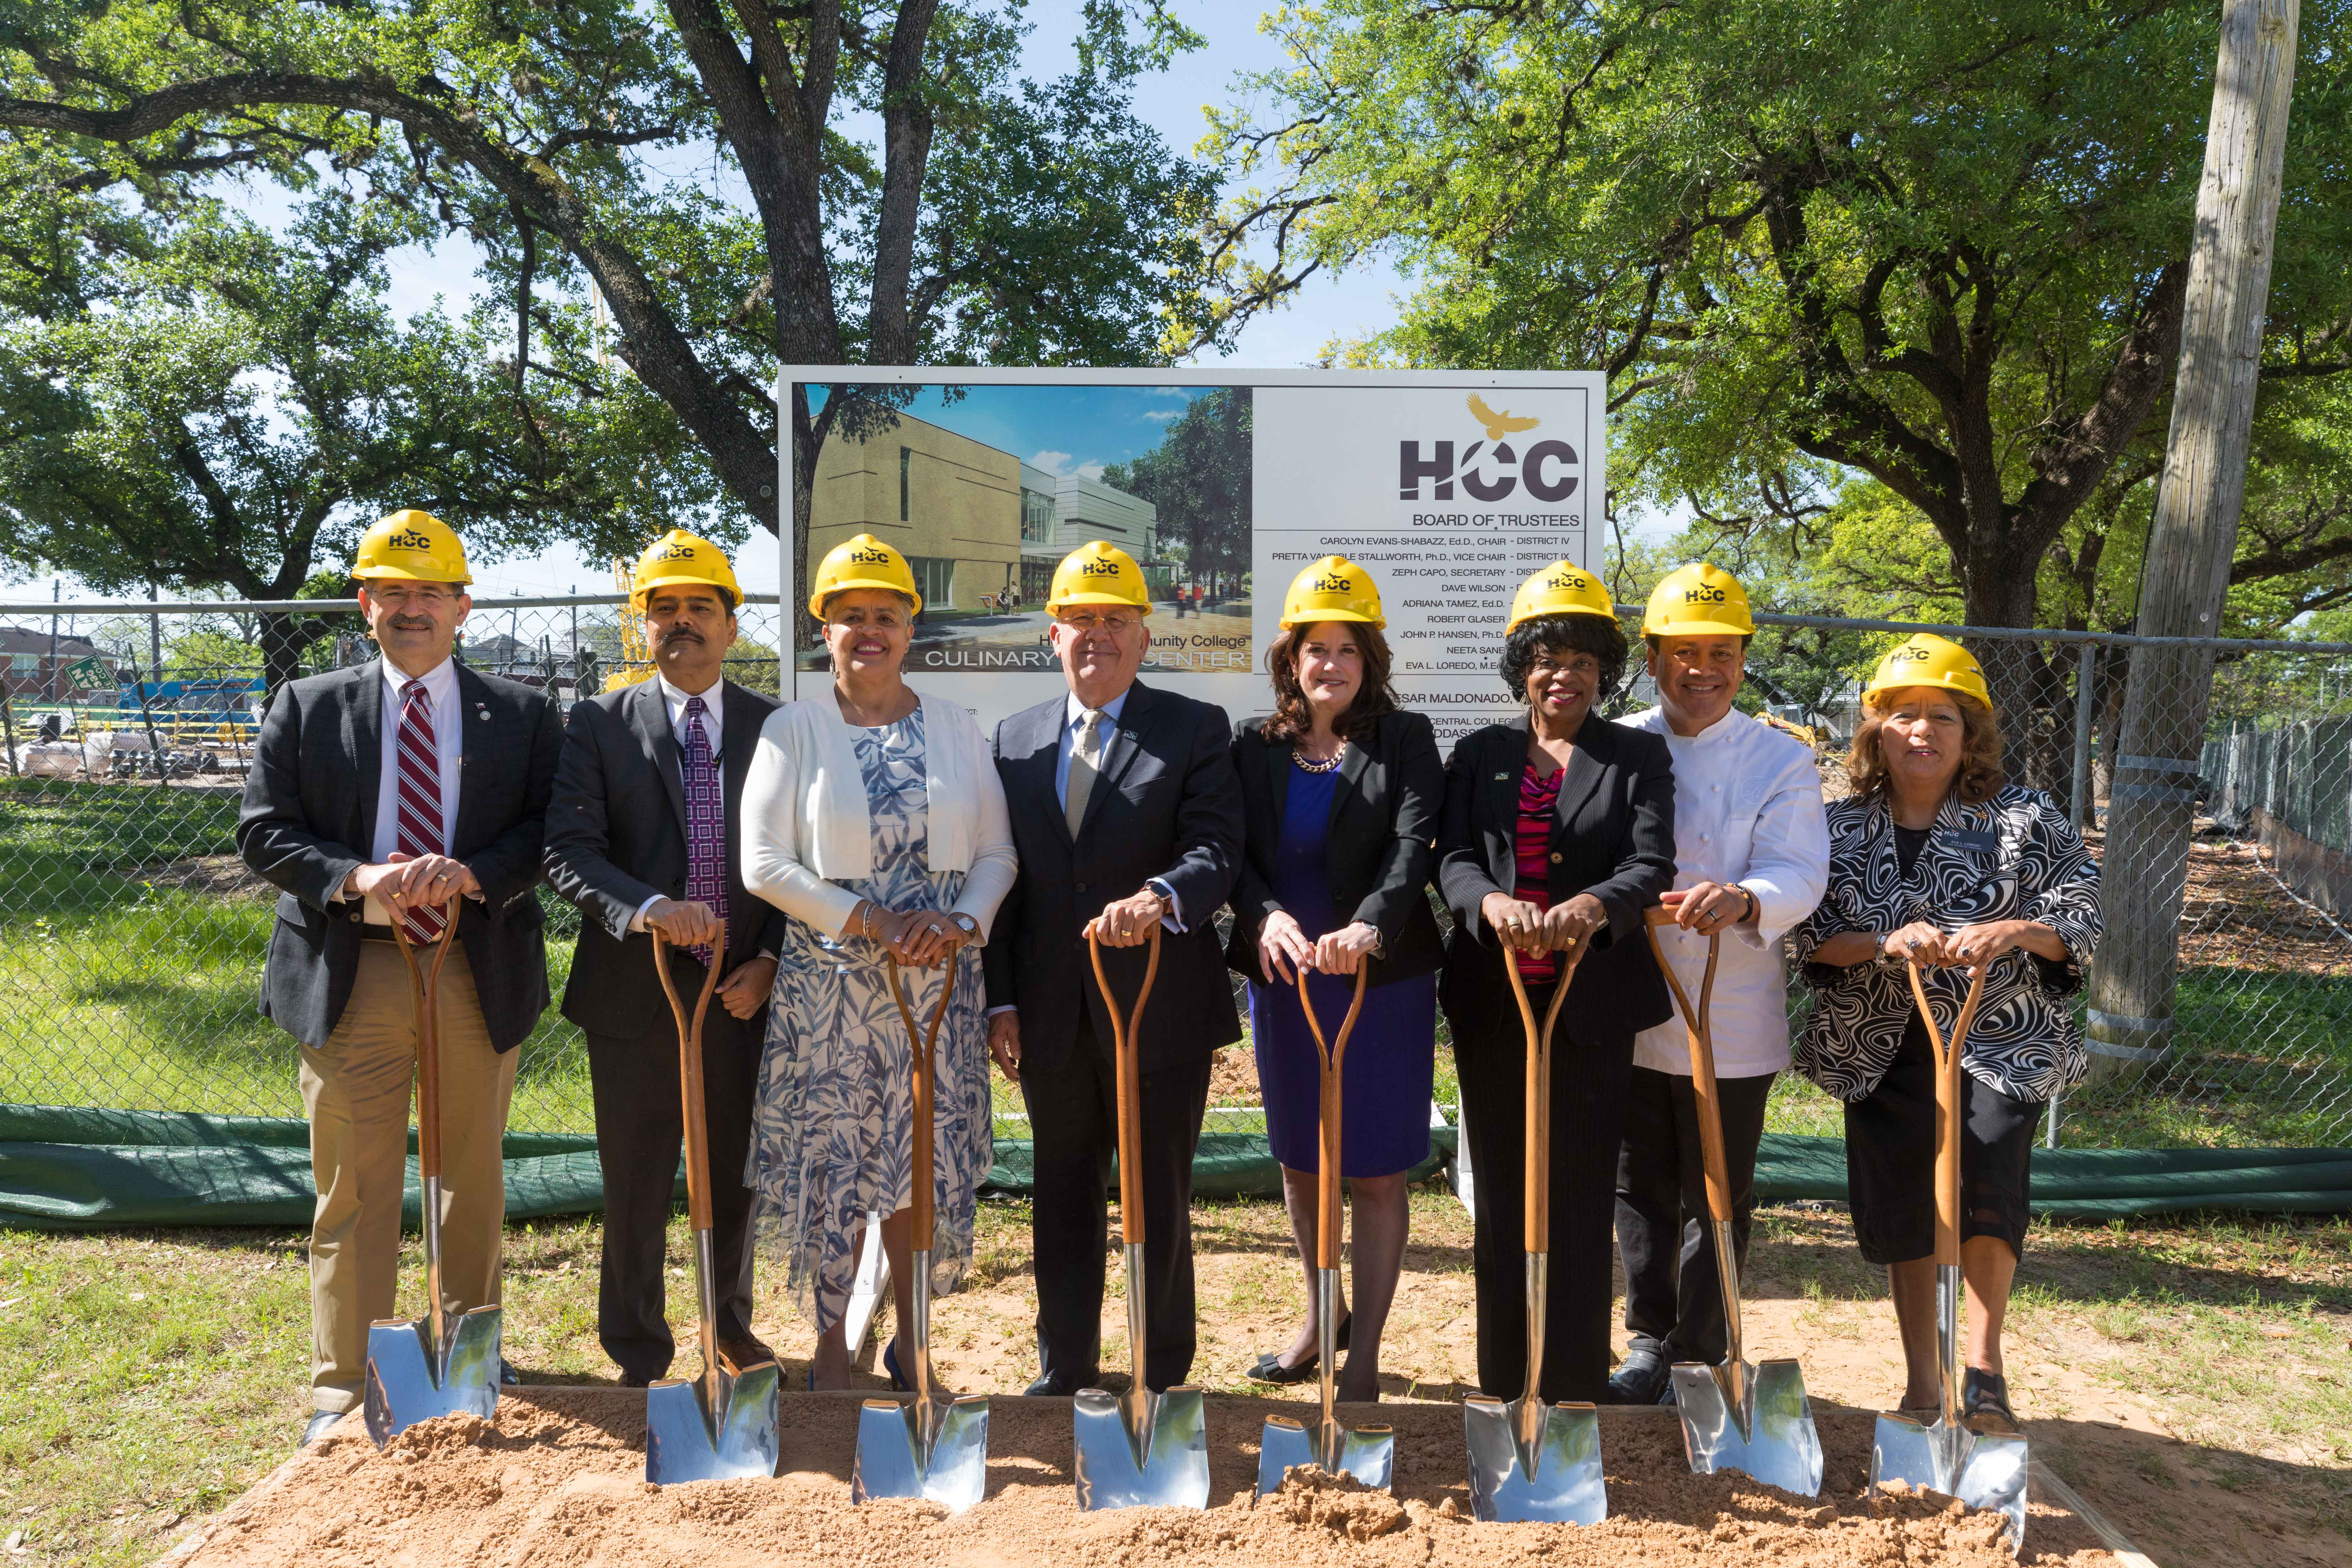 Construction Of Hccs New Culinary Arts Center Kicks Off With Ground